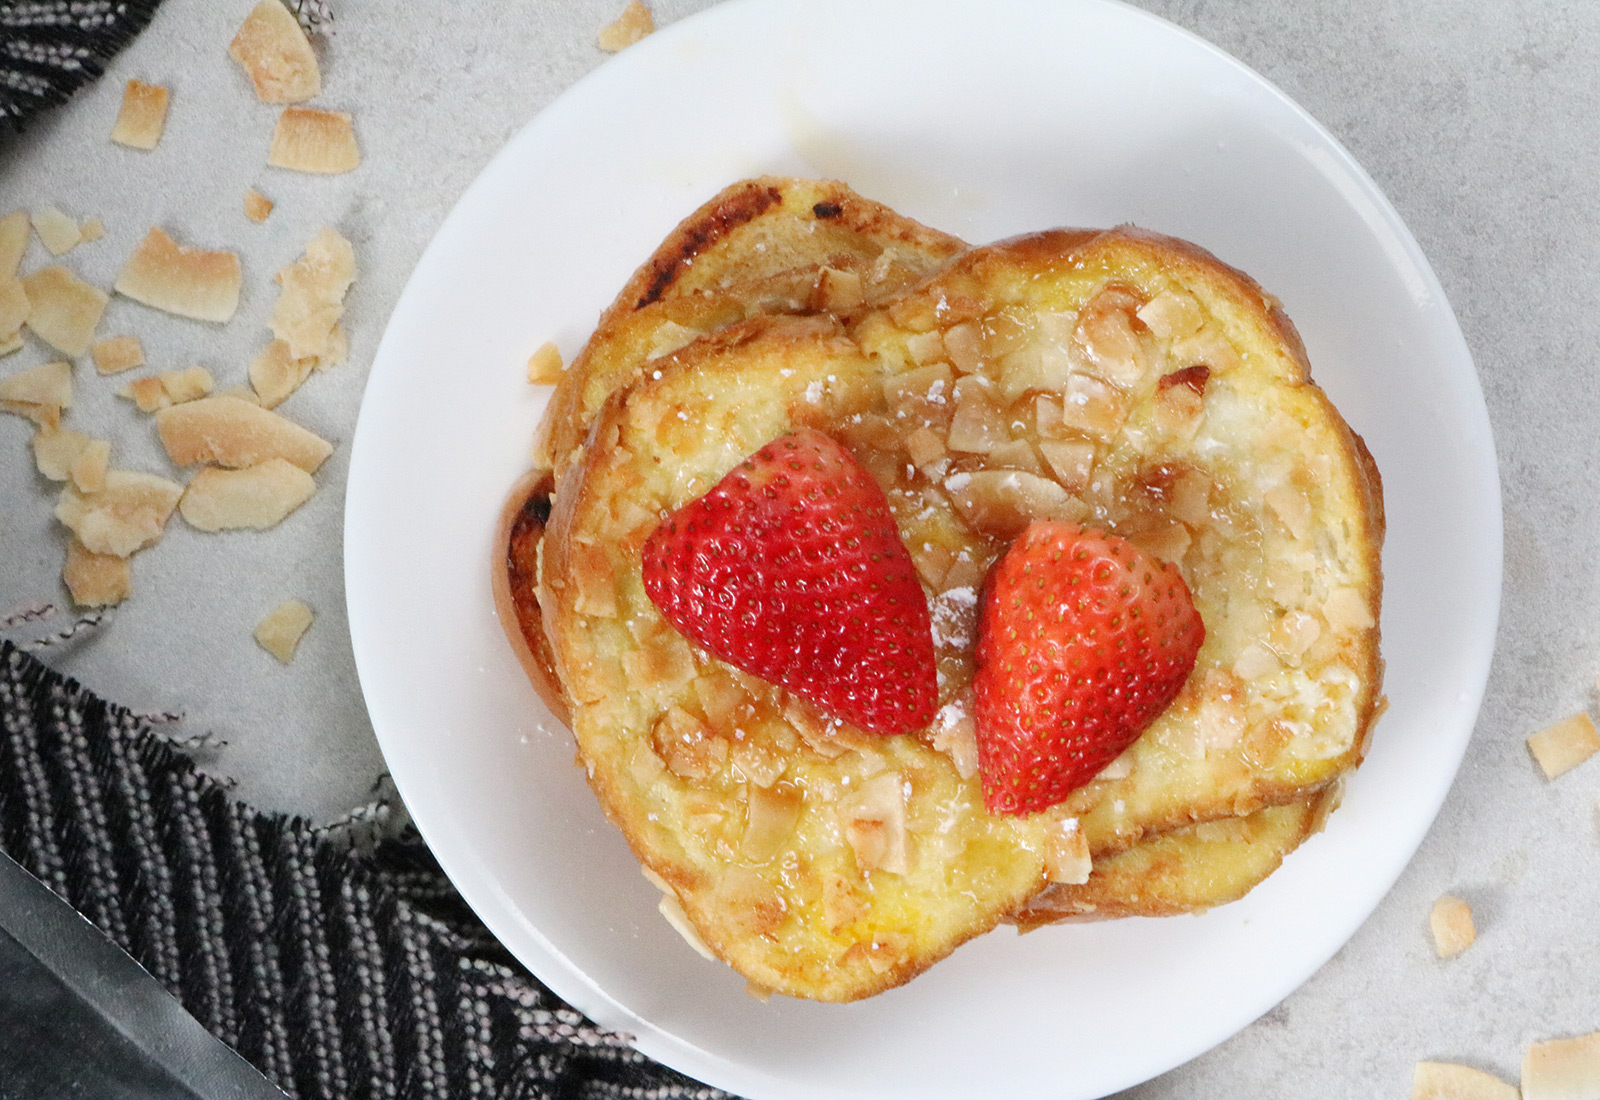 Coconut-Crusted French Toast Recipe